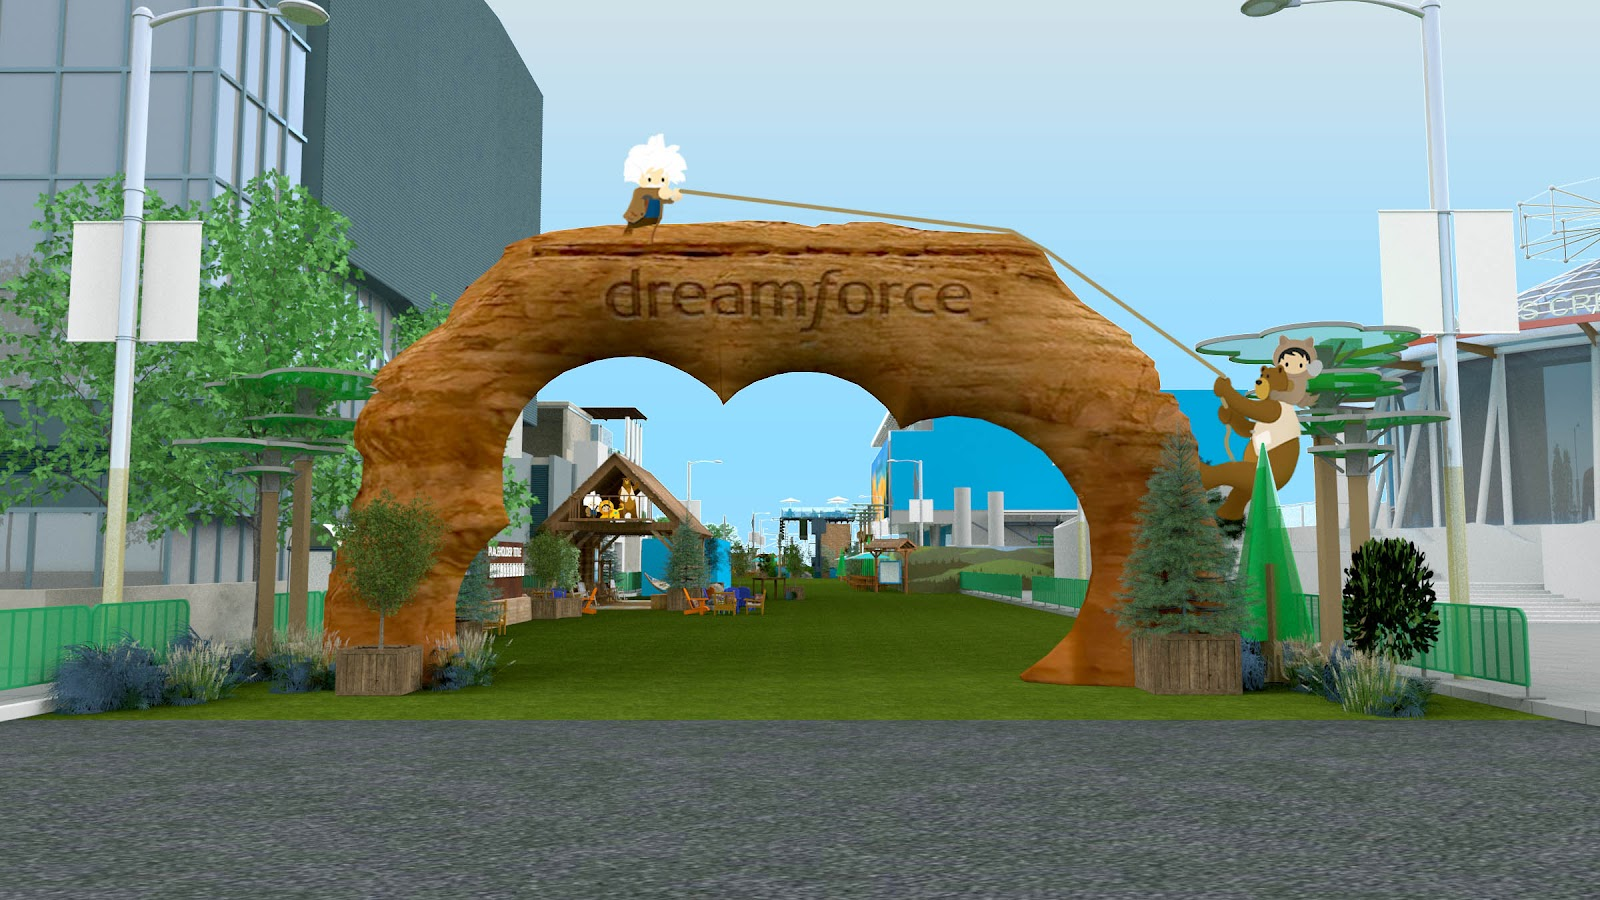 Dreamforce_National_Park_Master_v4_archescenter_09-14.jpg